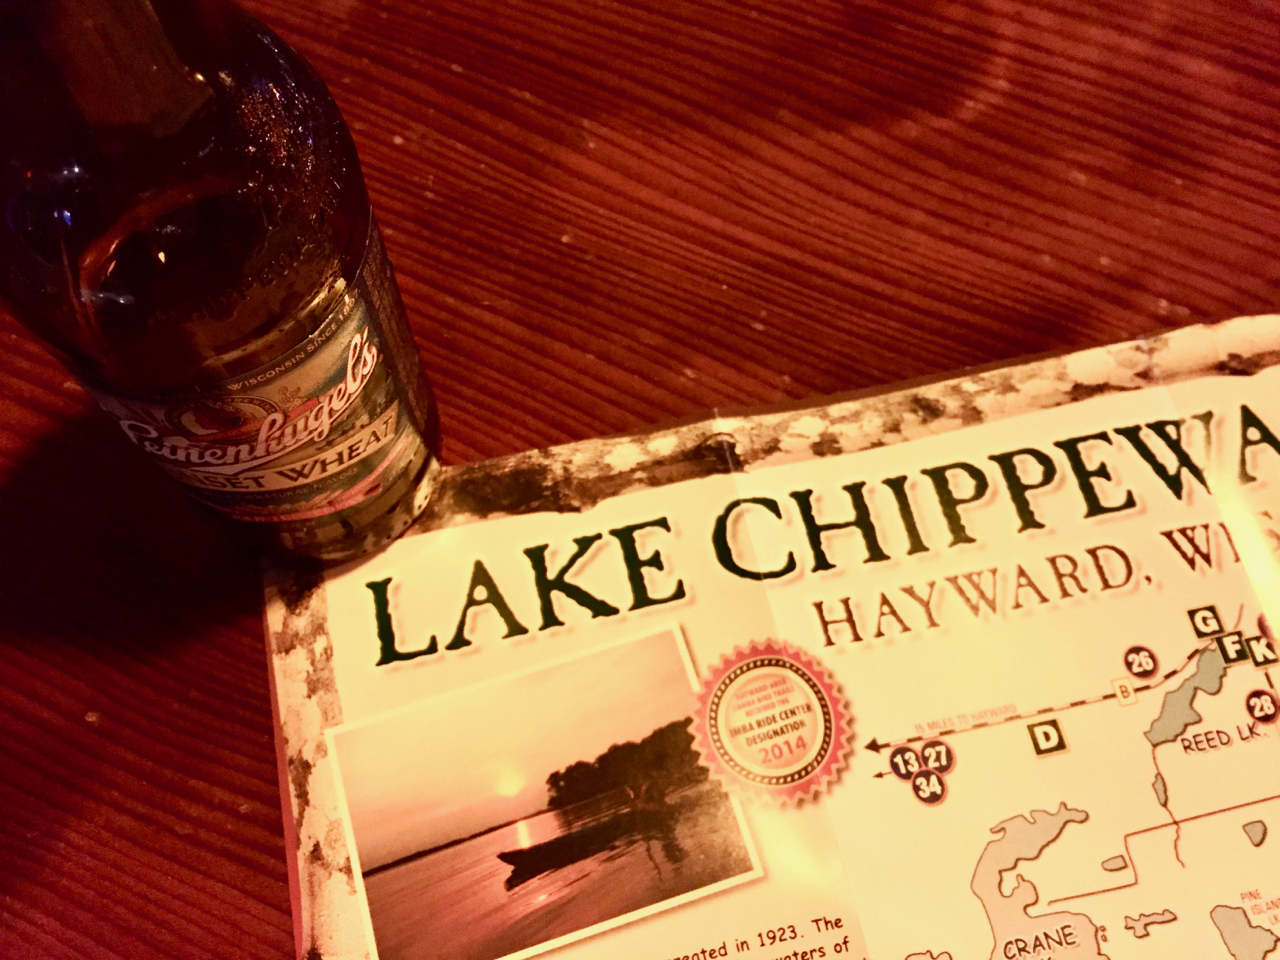 Lake Chippewa Flowage Map & a Leinie